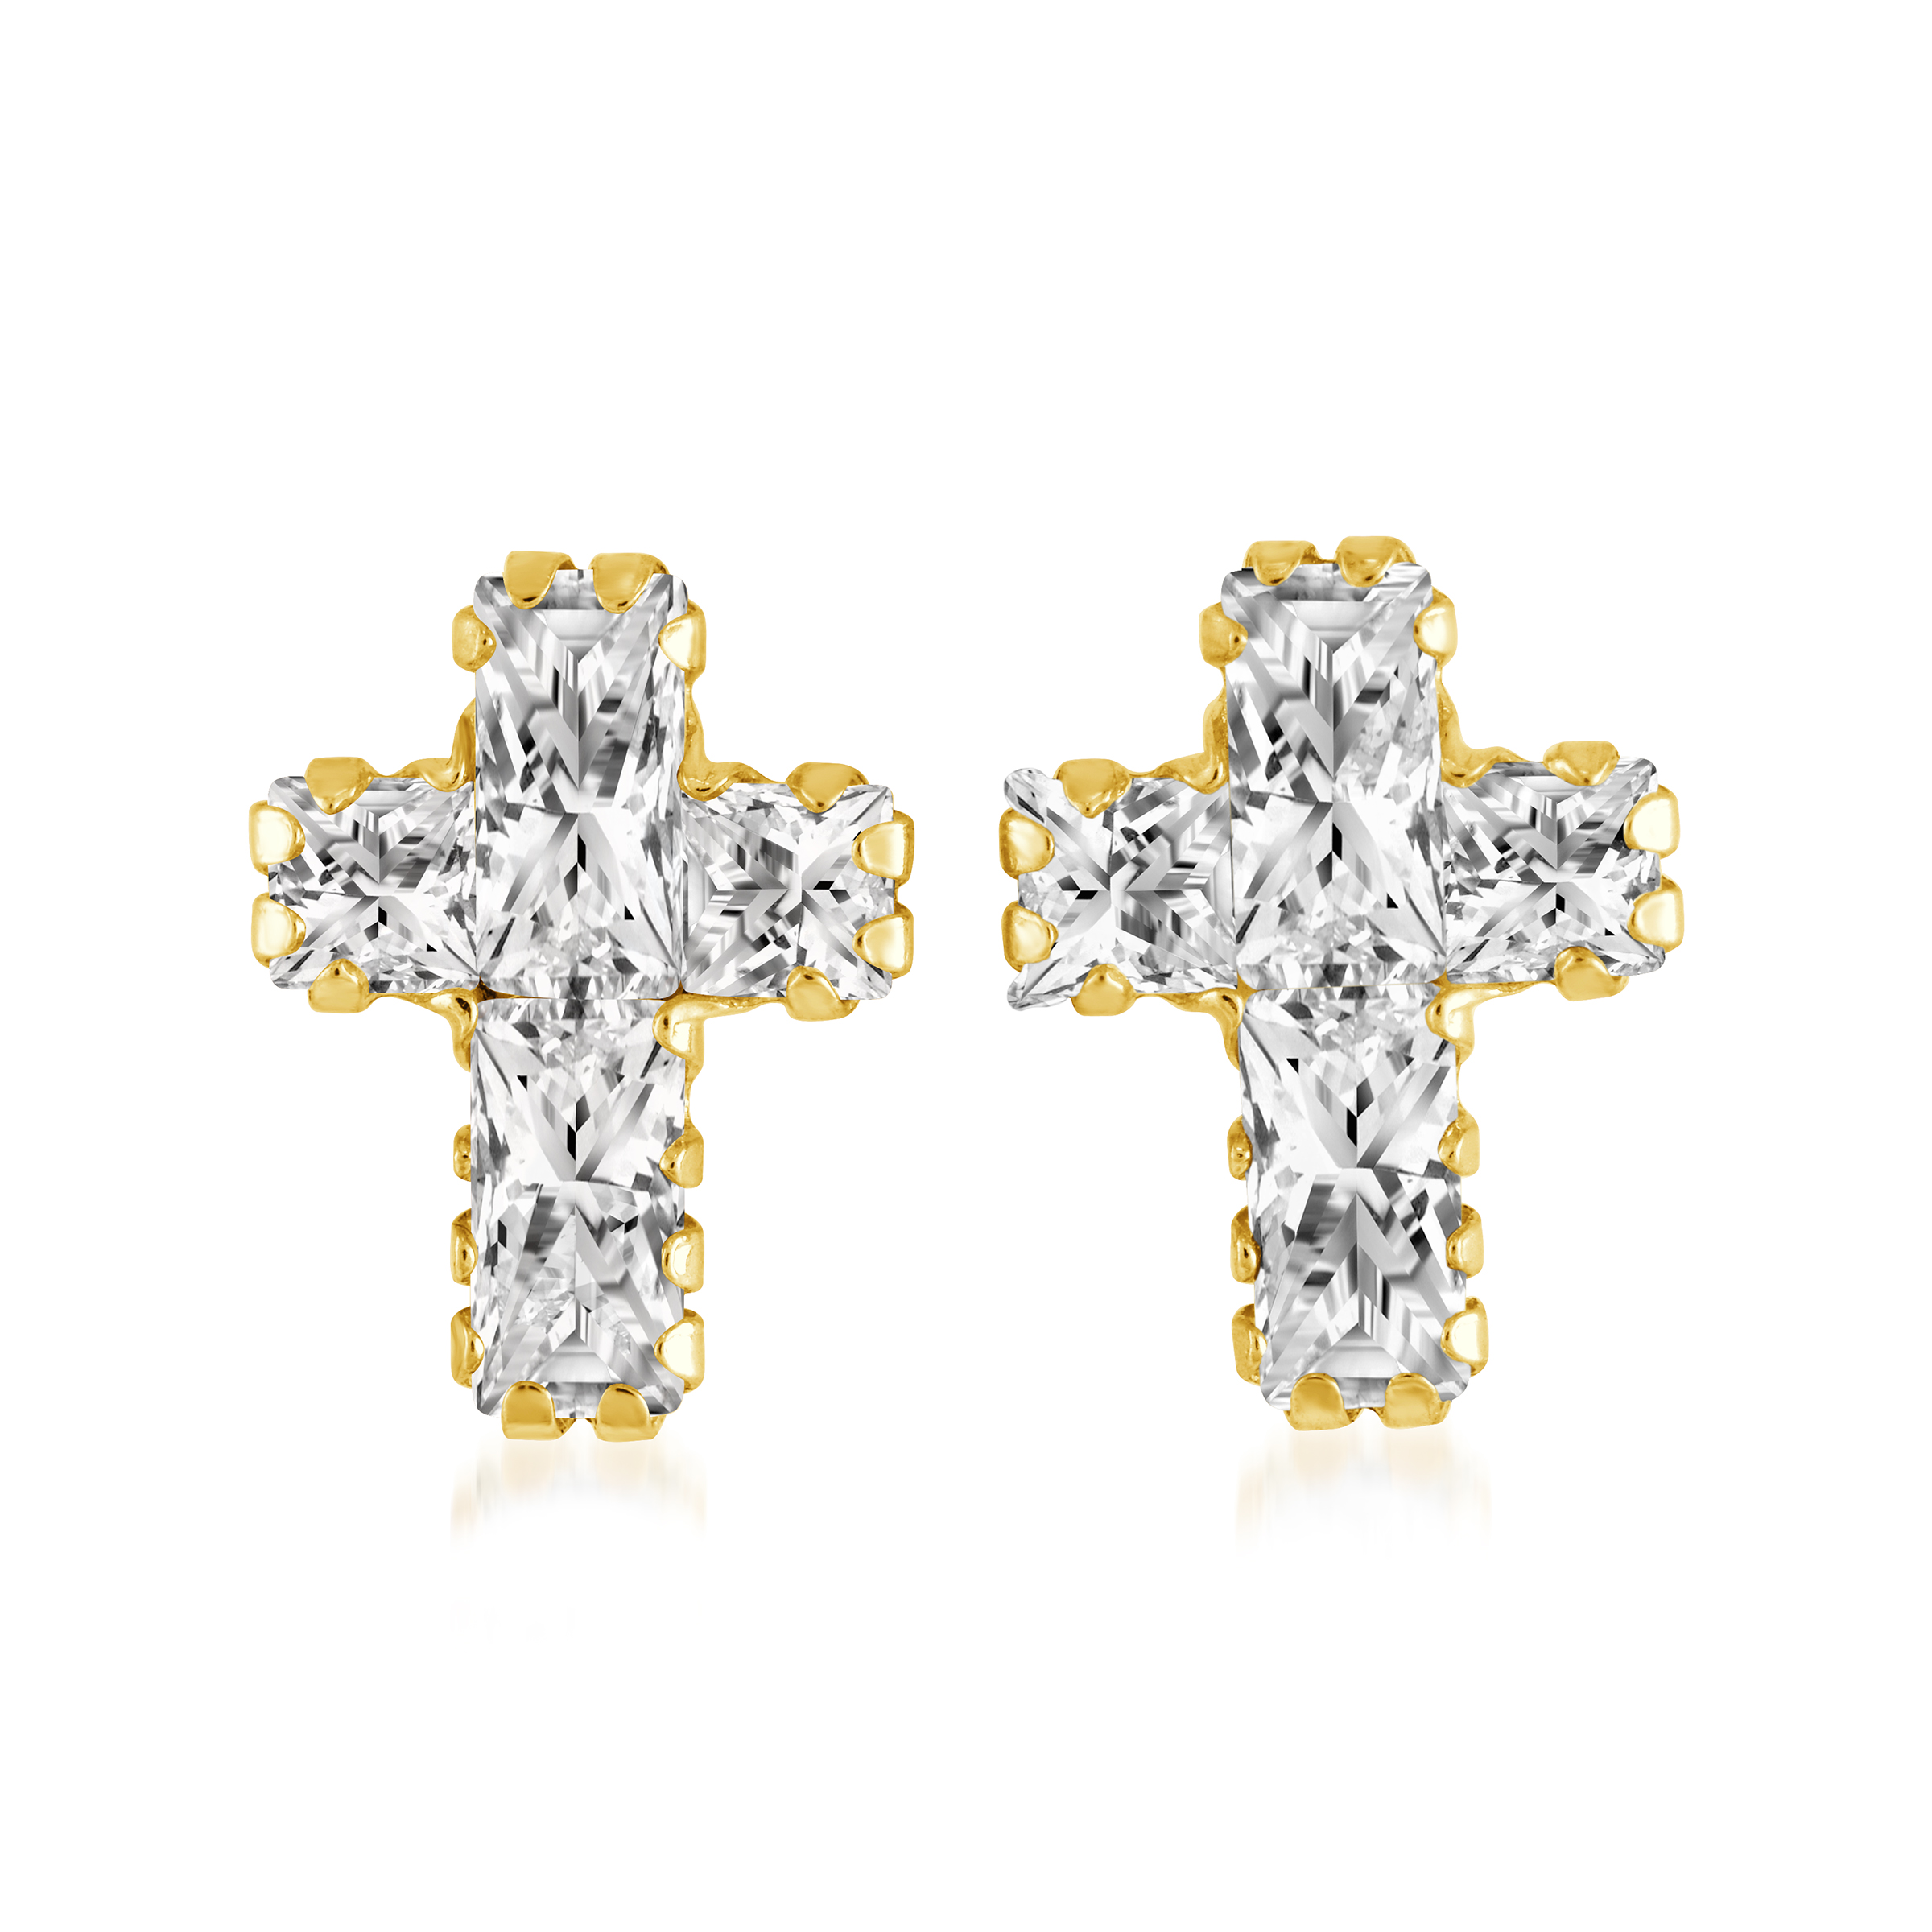 Cross earrings for kids - 10K yellow Gold & cubic zirconia